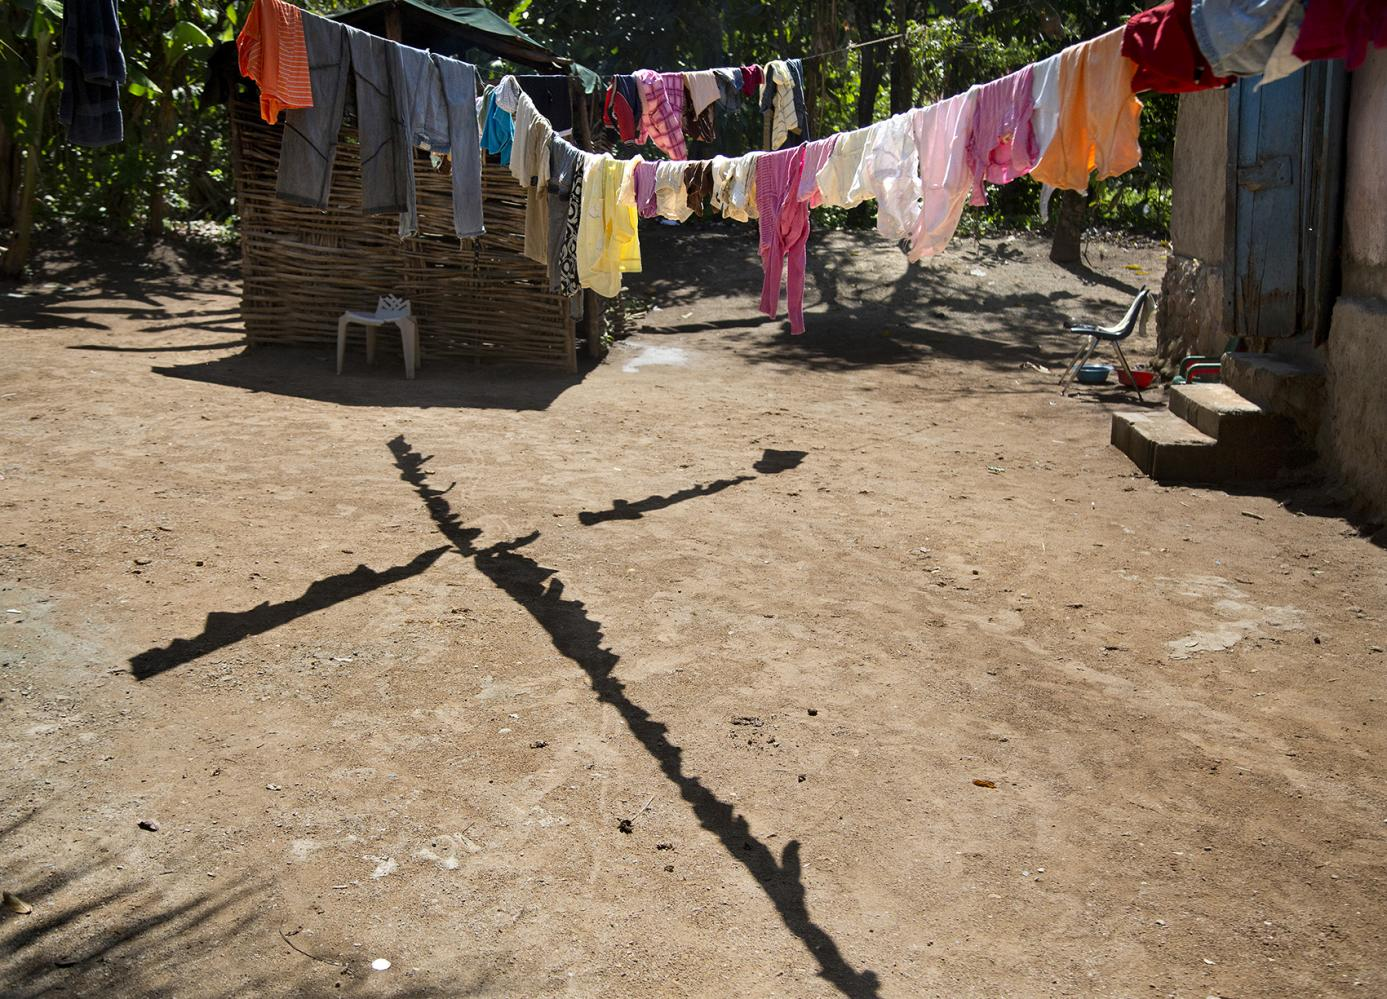 The shadow from drying laundry forms a fiery cross on the ground in Milot, Haiti.